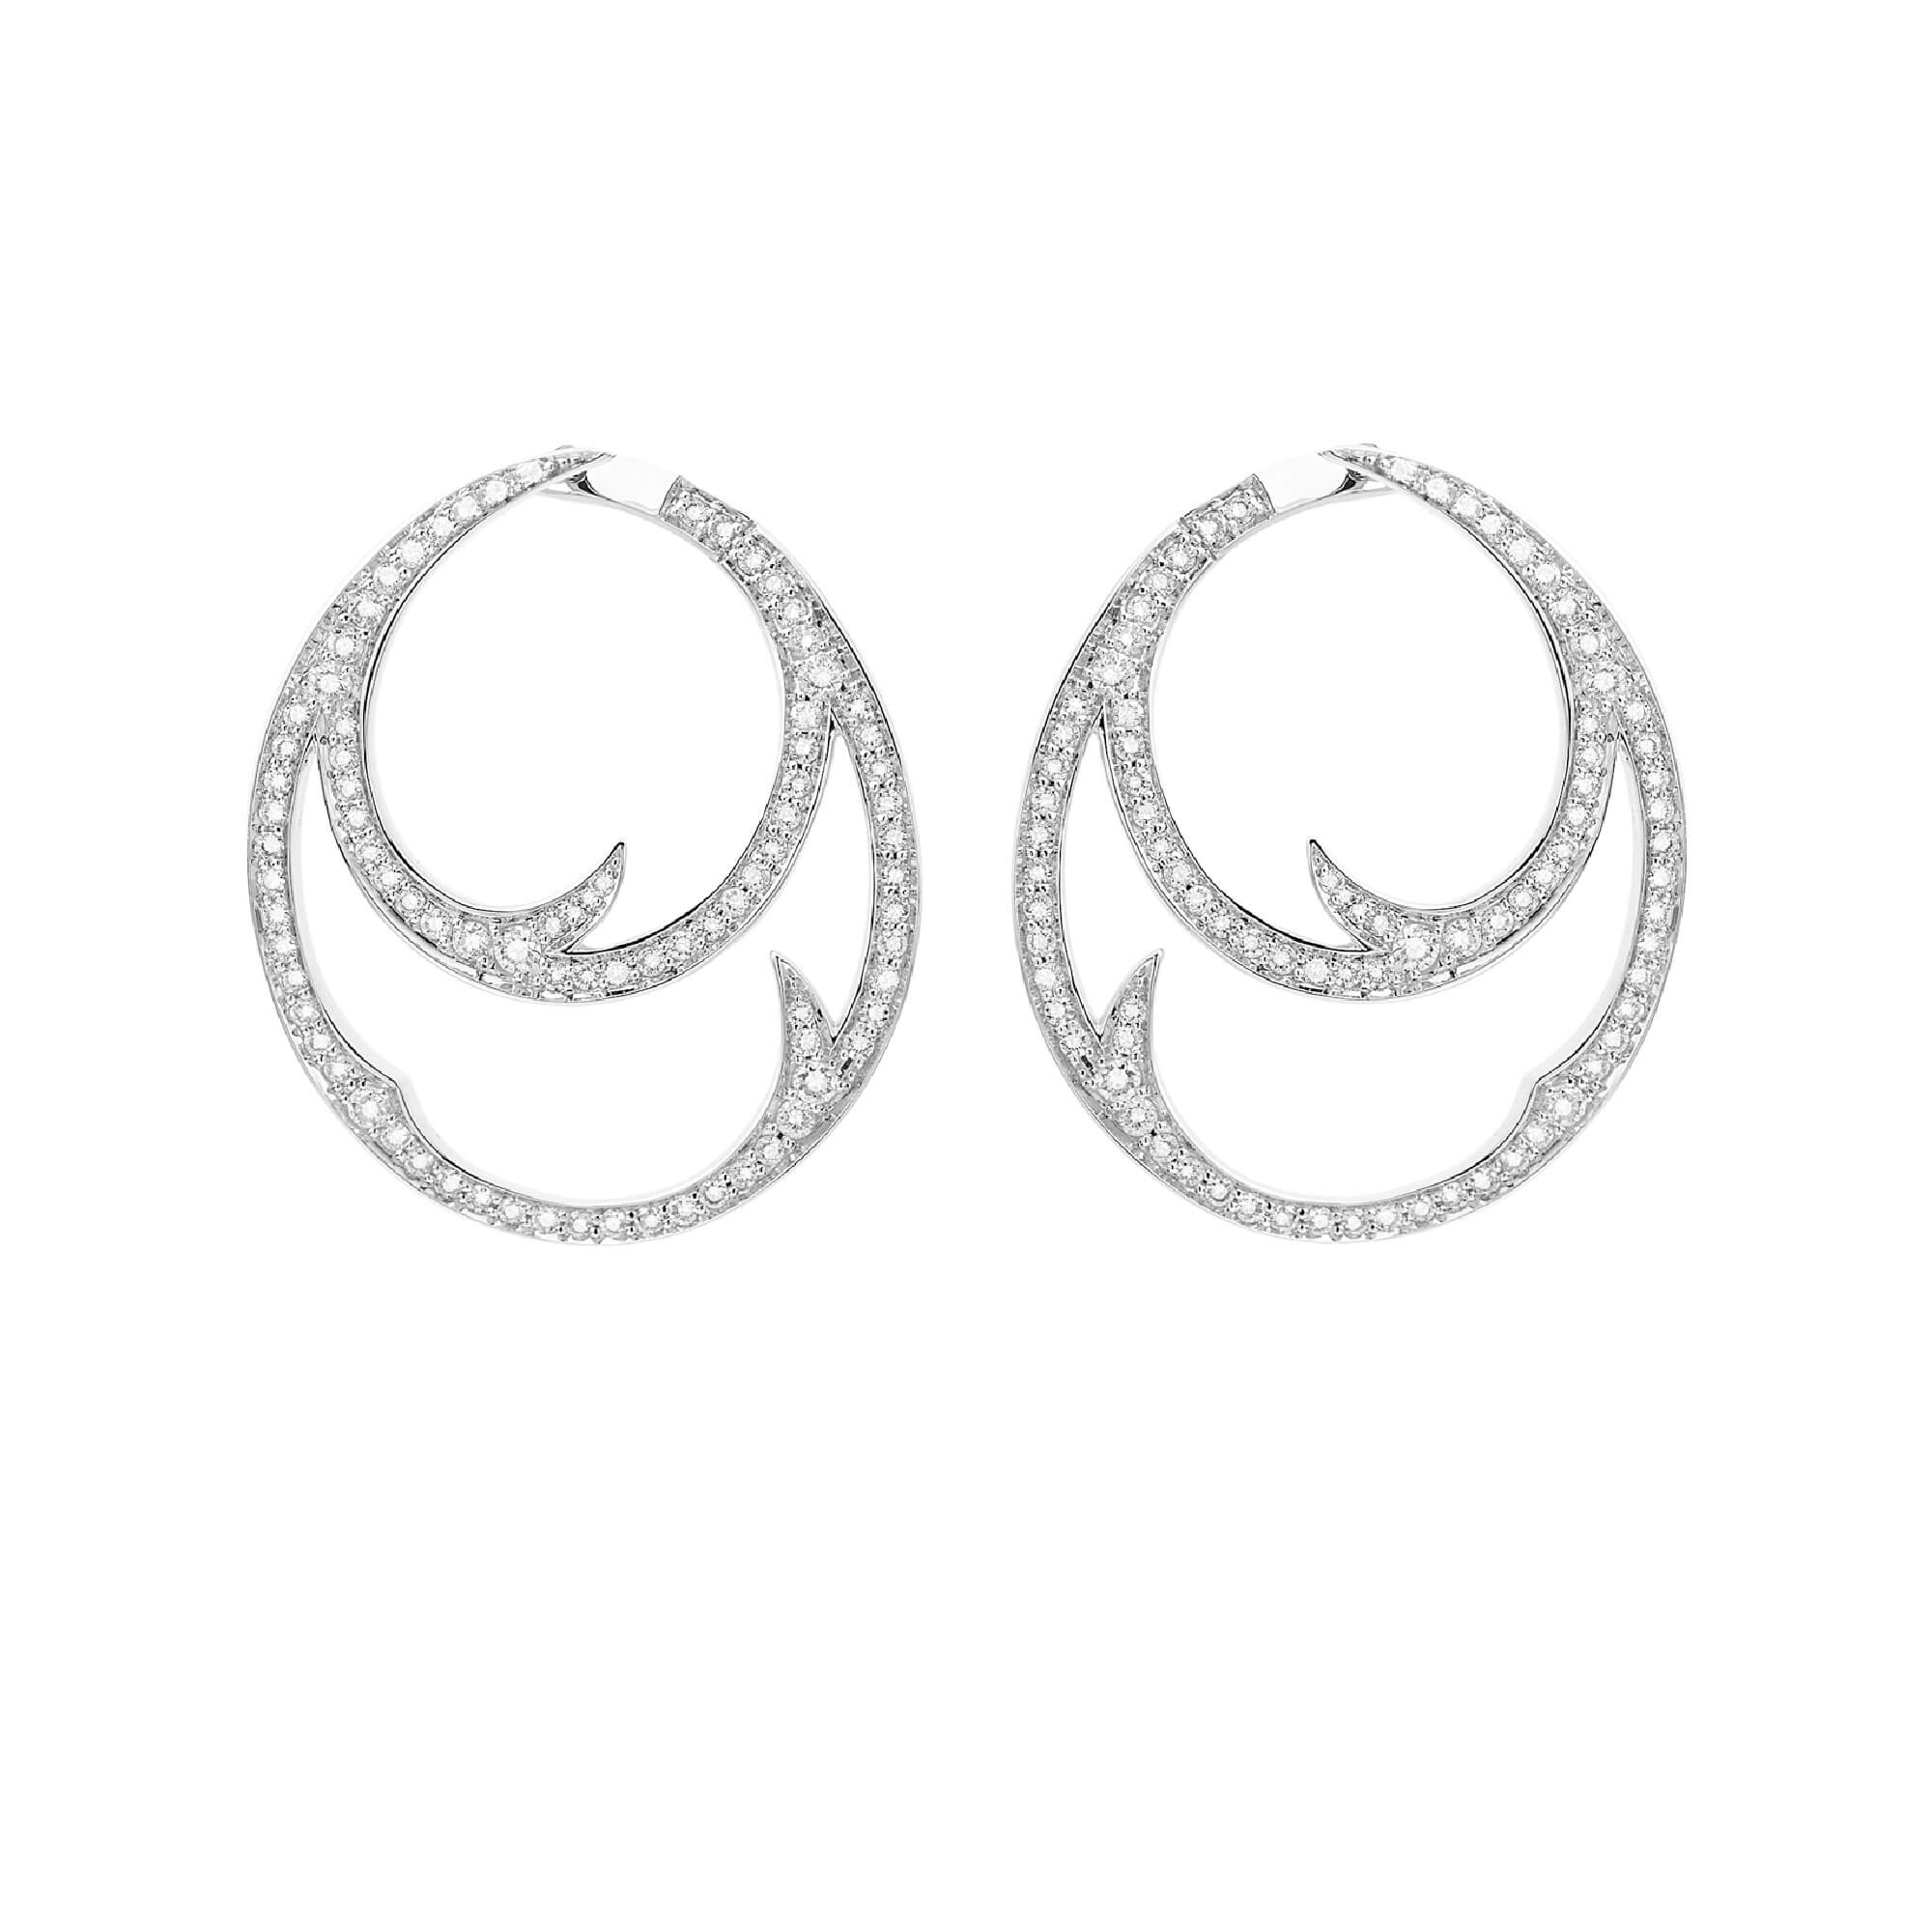 White Gold Double Hoop Earrings with White Diamond | Thorn